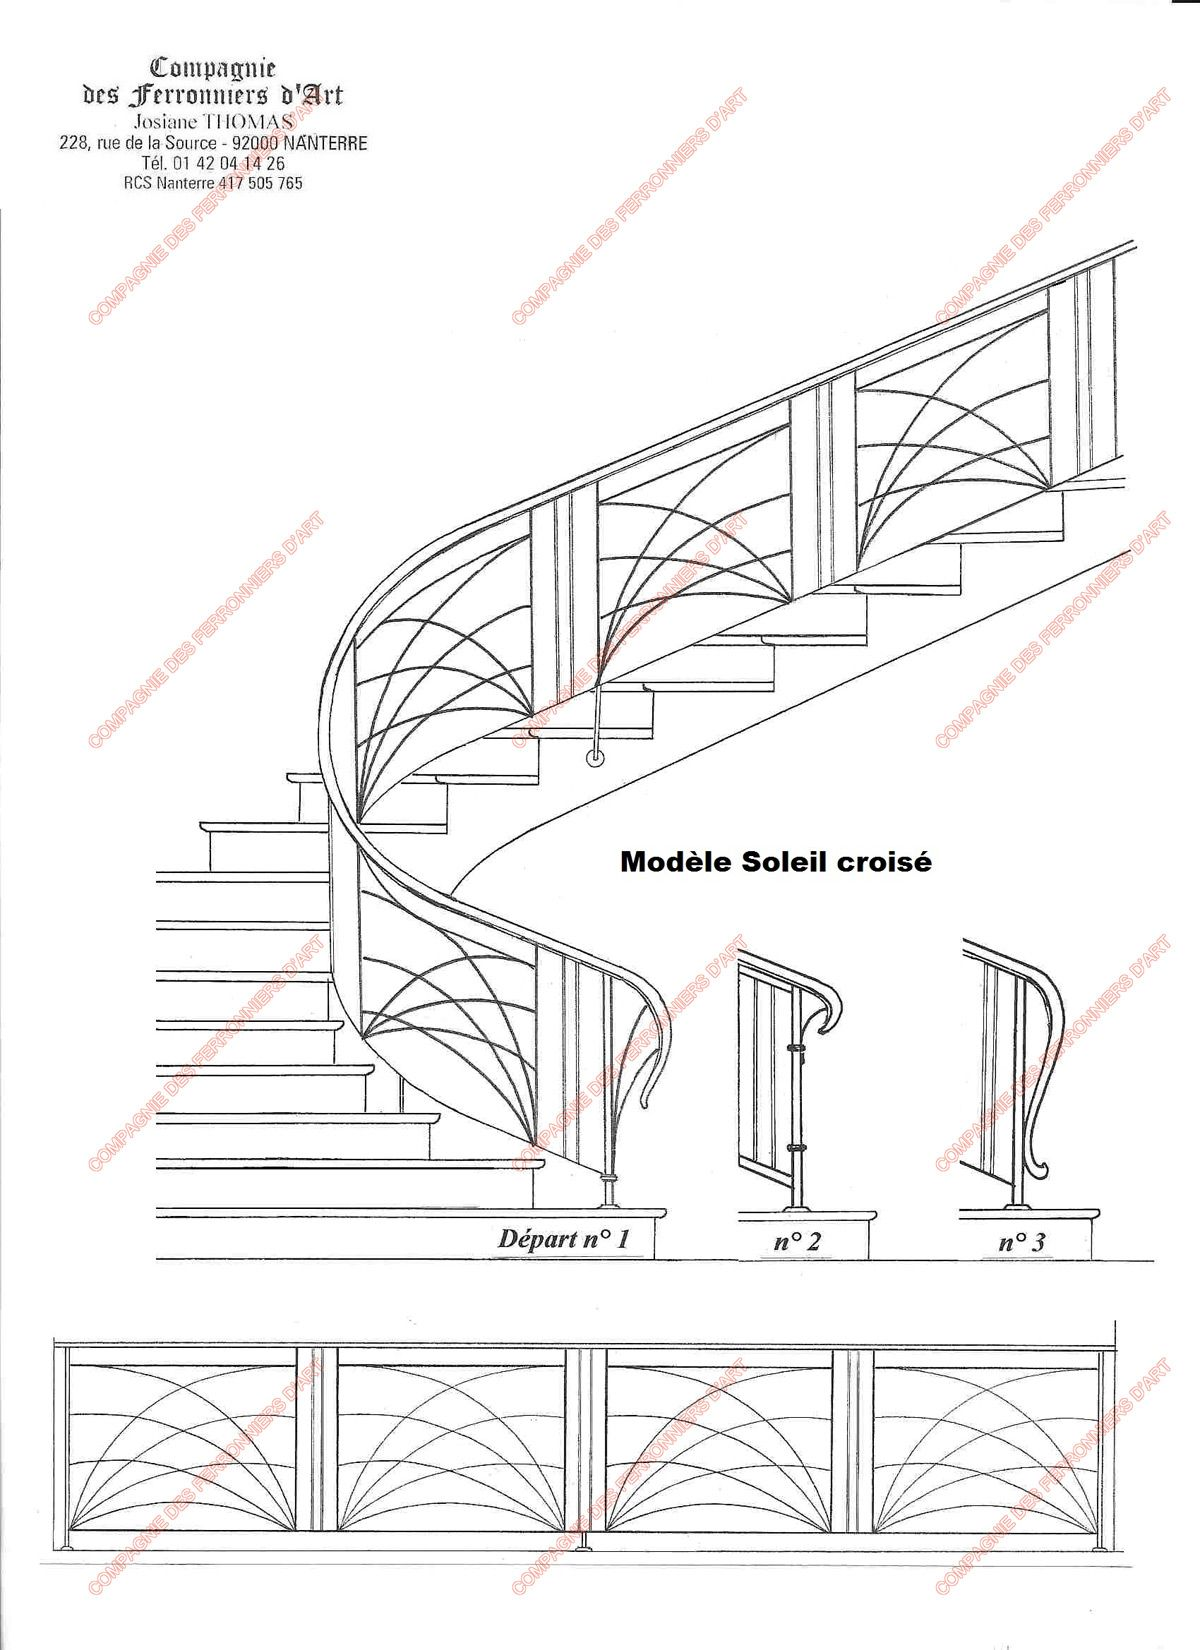 rampes d 39 escalier en fer forg art d coratif mod le soleil crois steel pinterest. Black Bedroom Furniture Sets. Home Design Ideas